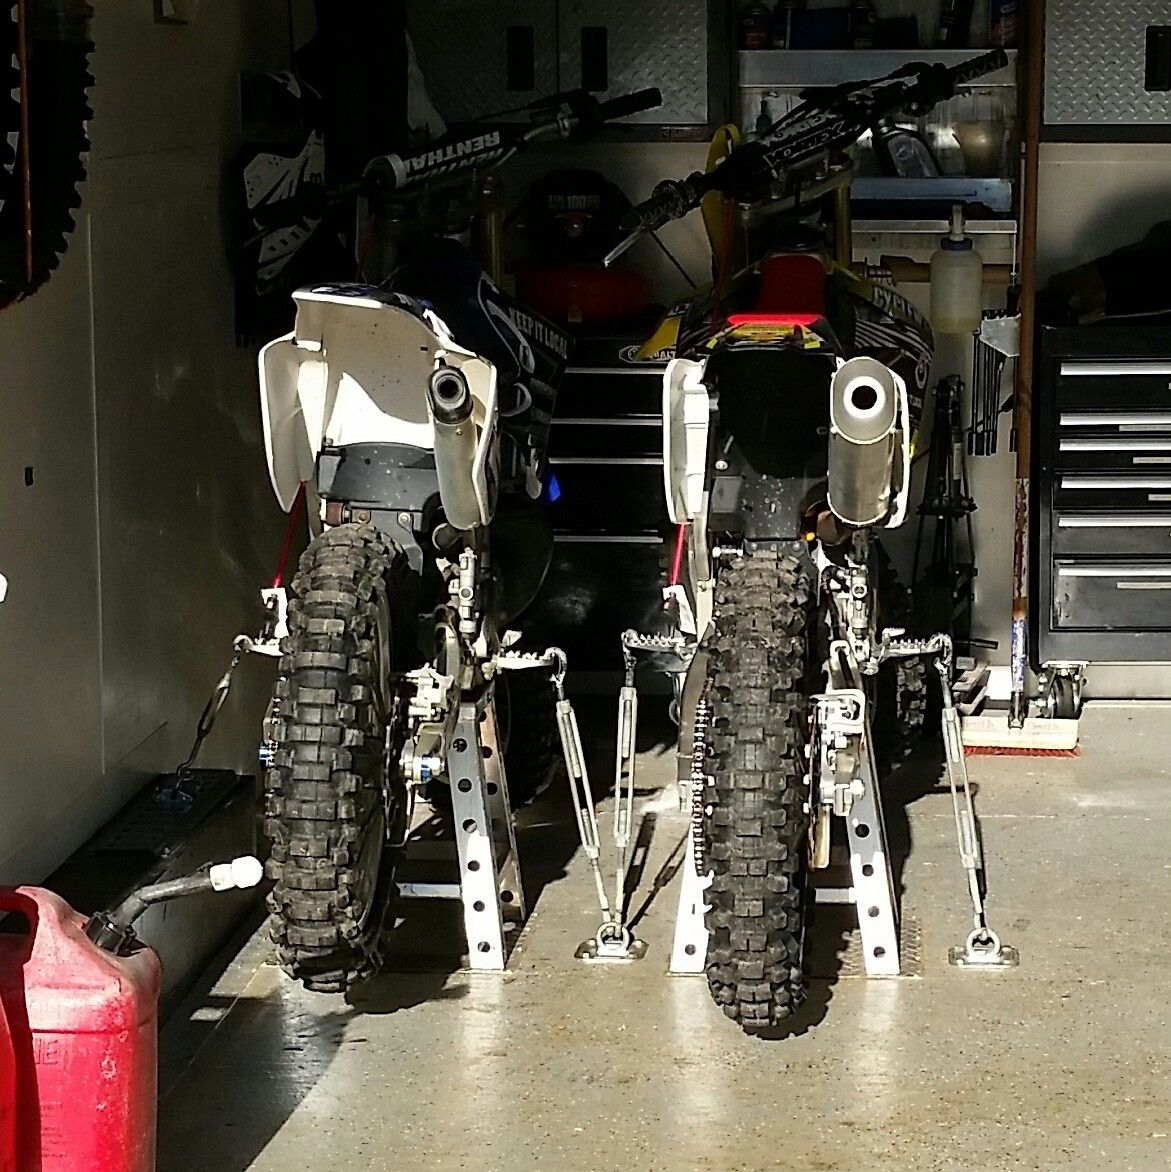 Camper Wheel Chocks >> transporting a bike without tie downs - Moto-Related ...